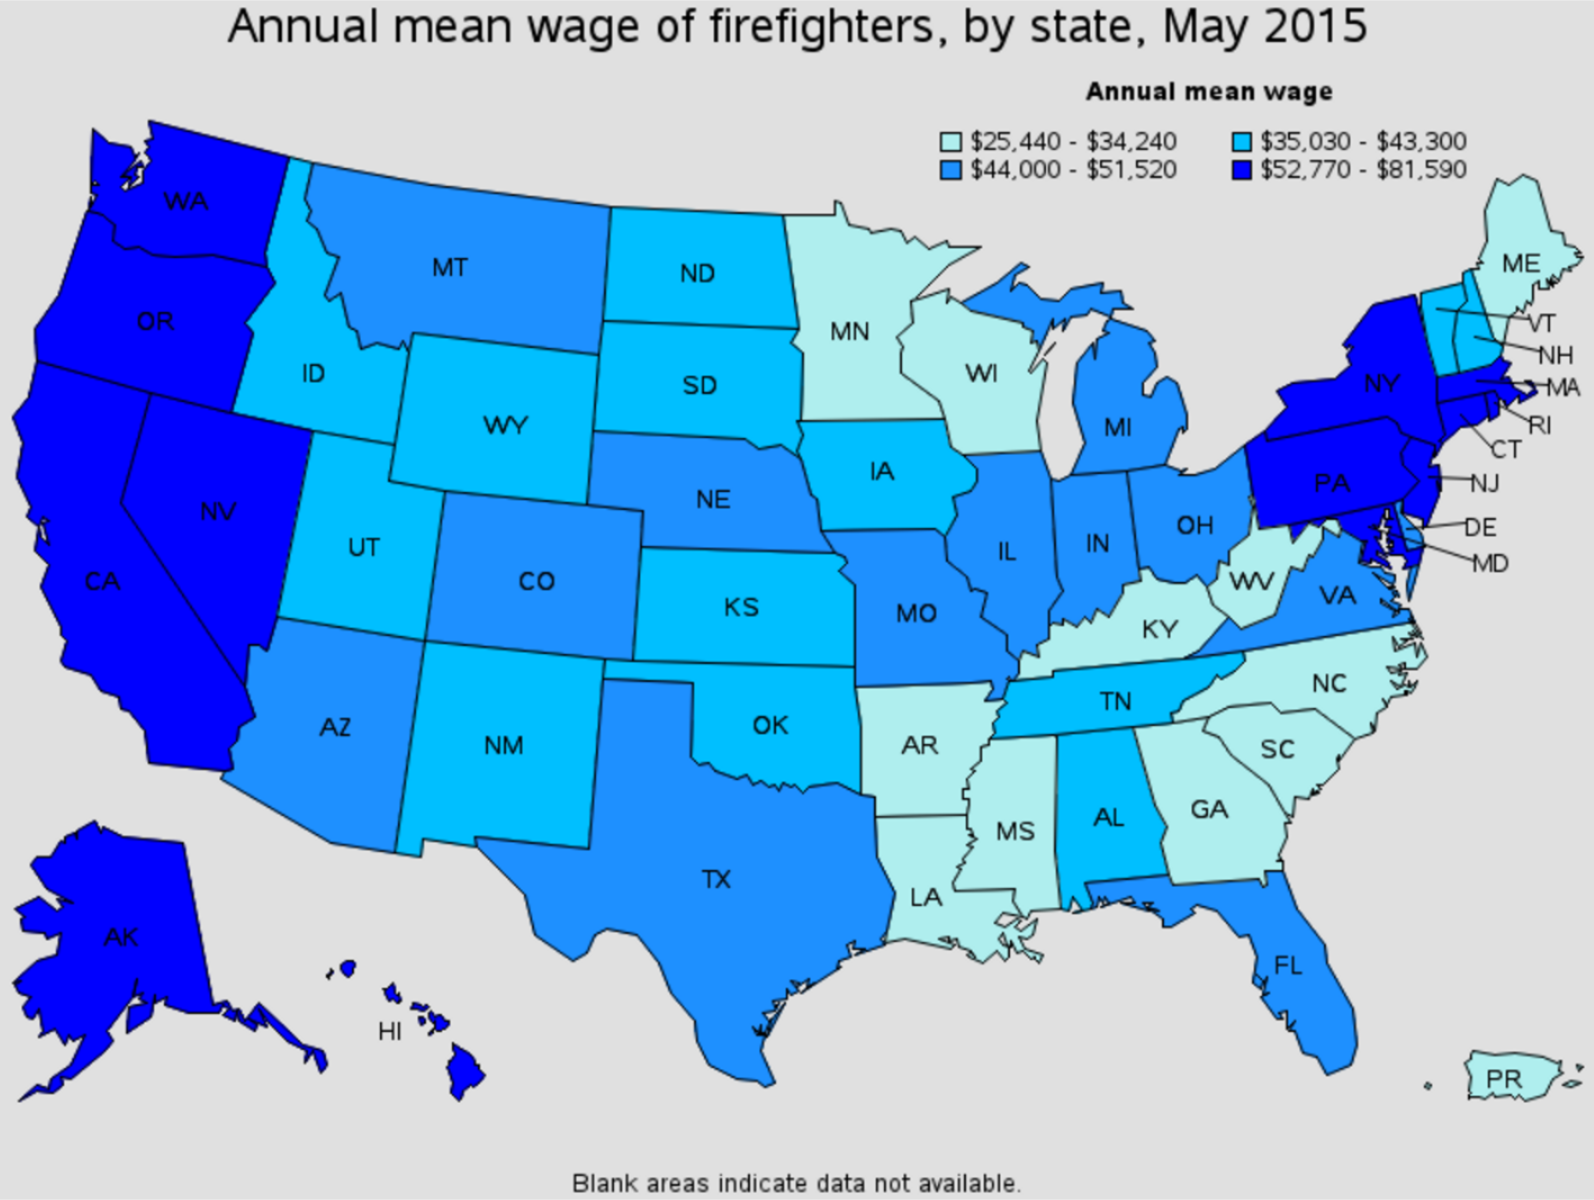 firefighter average salary by state Blountstown Florida